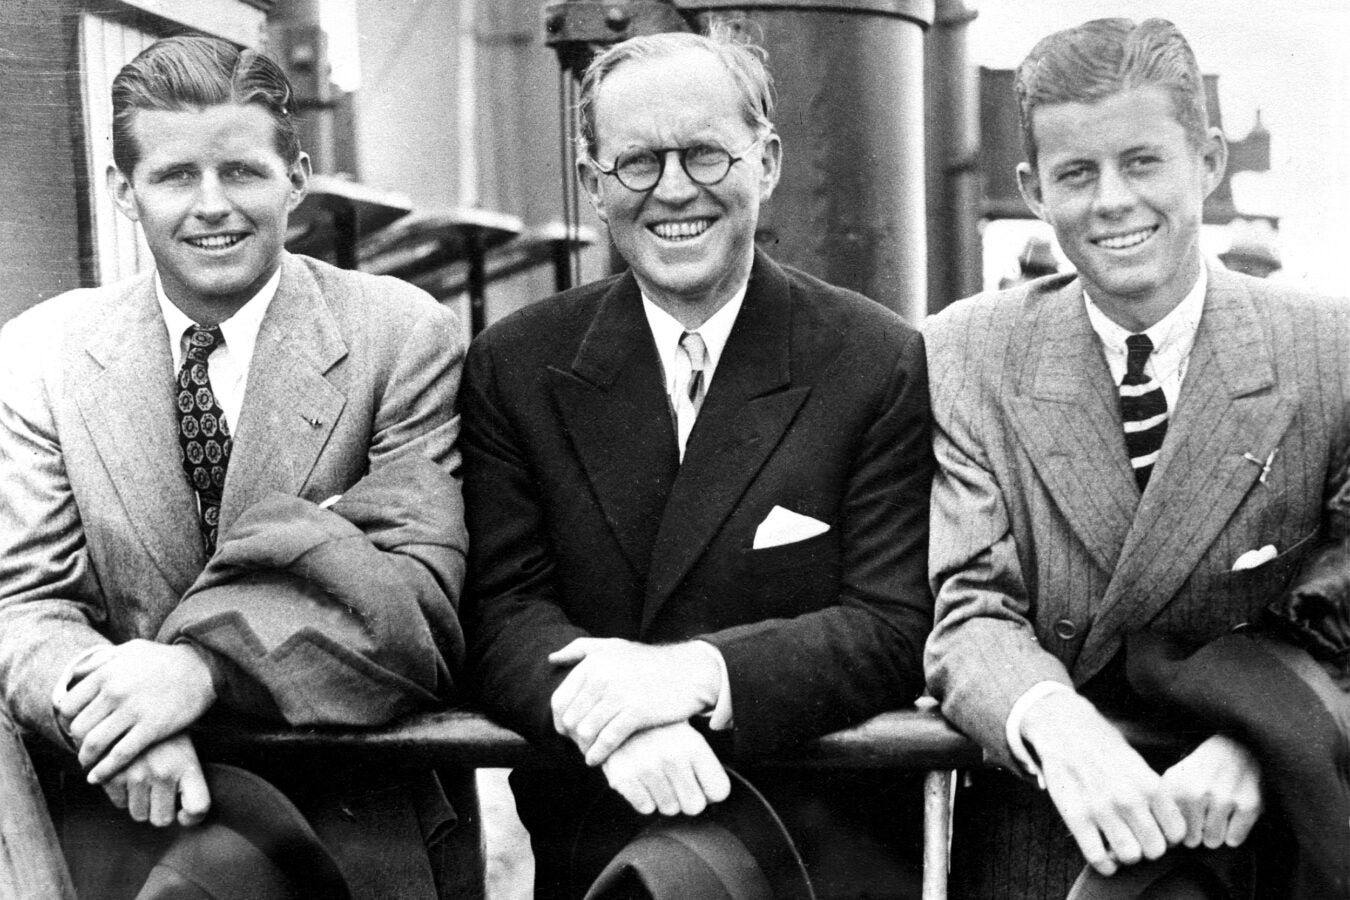 New JFK biography aims to chronicle a complex life